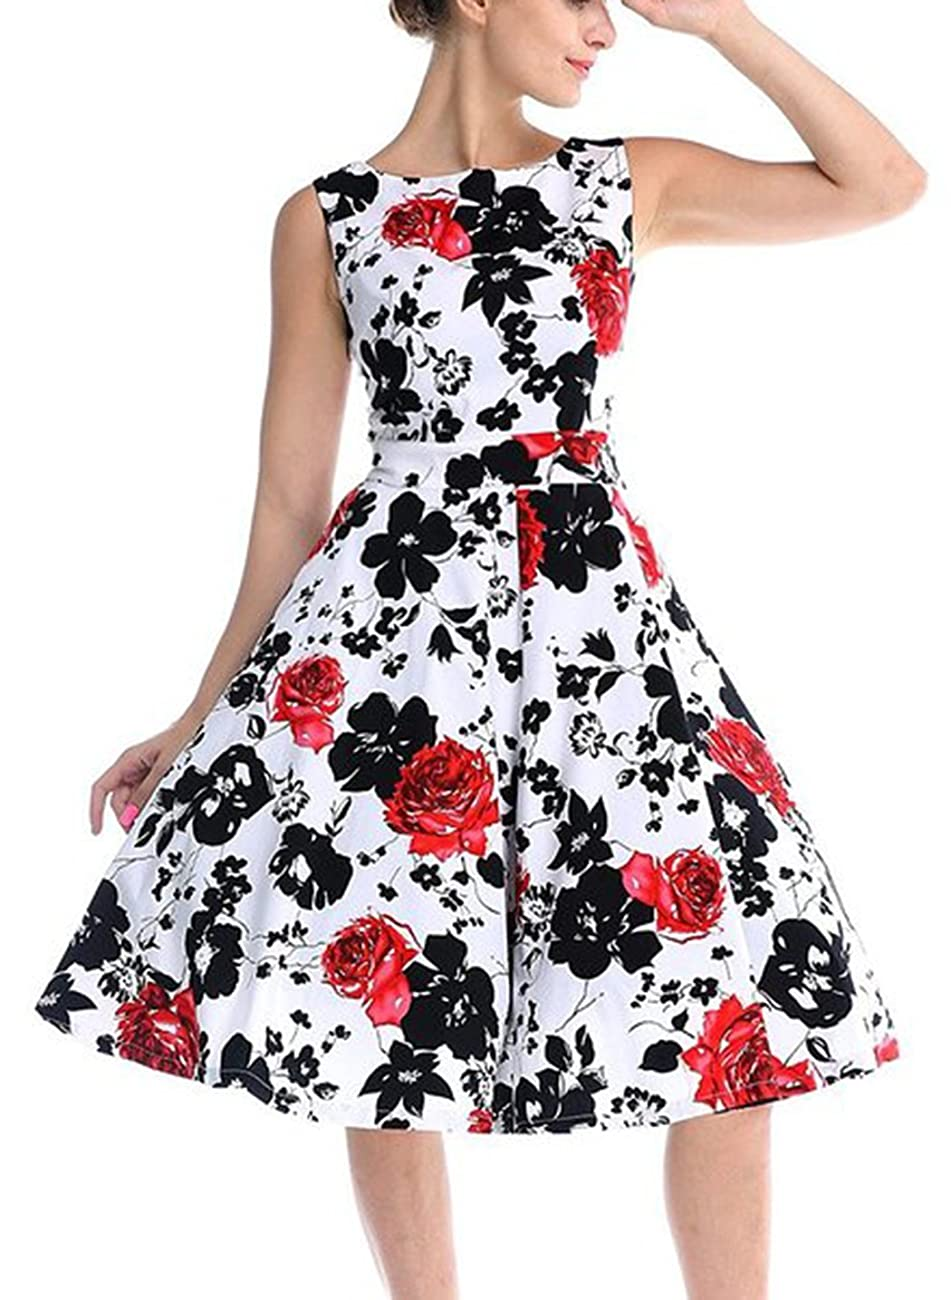 CHIC.U 1950's Vintage Floral Spring Garden Party Picnic Dress Party Cocktail Dress 2